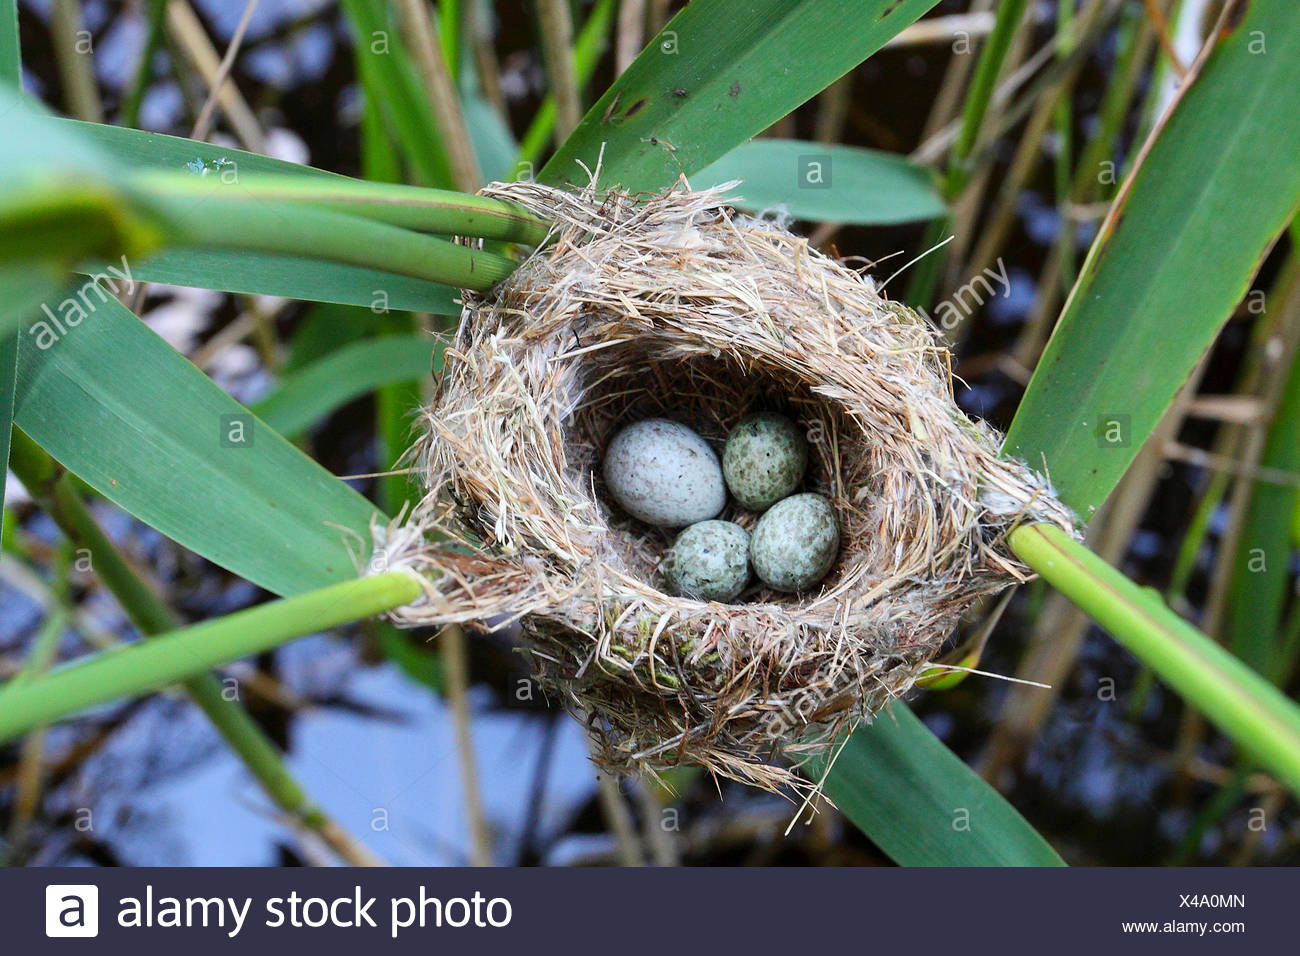 Eurasian cuckoo (Cuculus canorus), eggs in the nest, cuckoo put his slightly larger egg in the nest to the eggs of a reed warbler, Germany - Stock Image